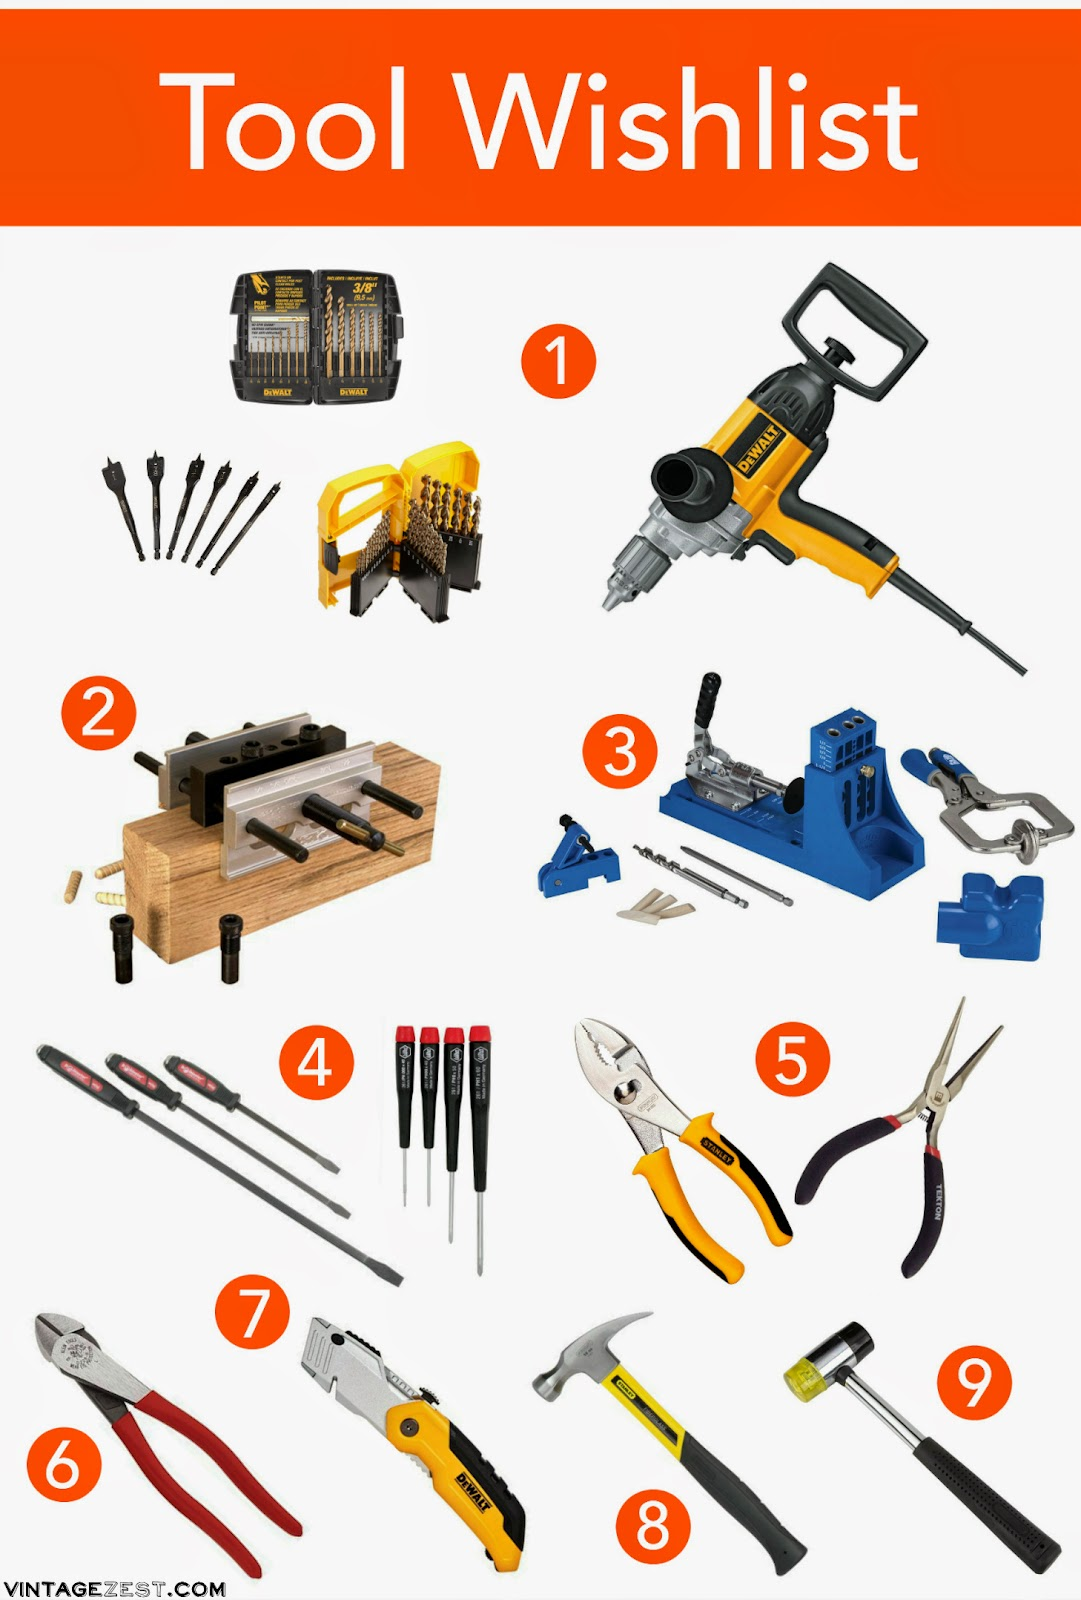 Essential Woodworking Tools for Beginners: A wishlist! on Diane's ...